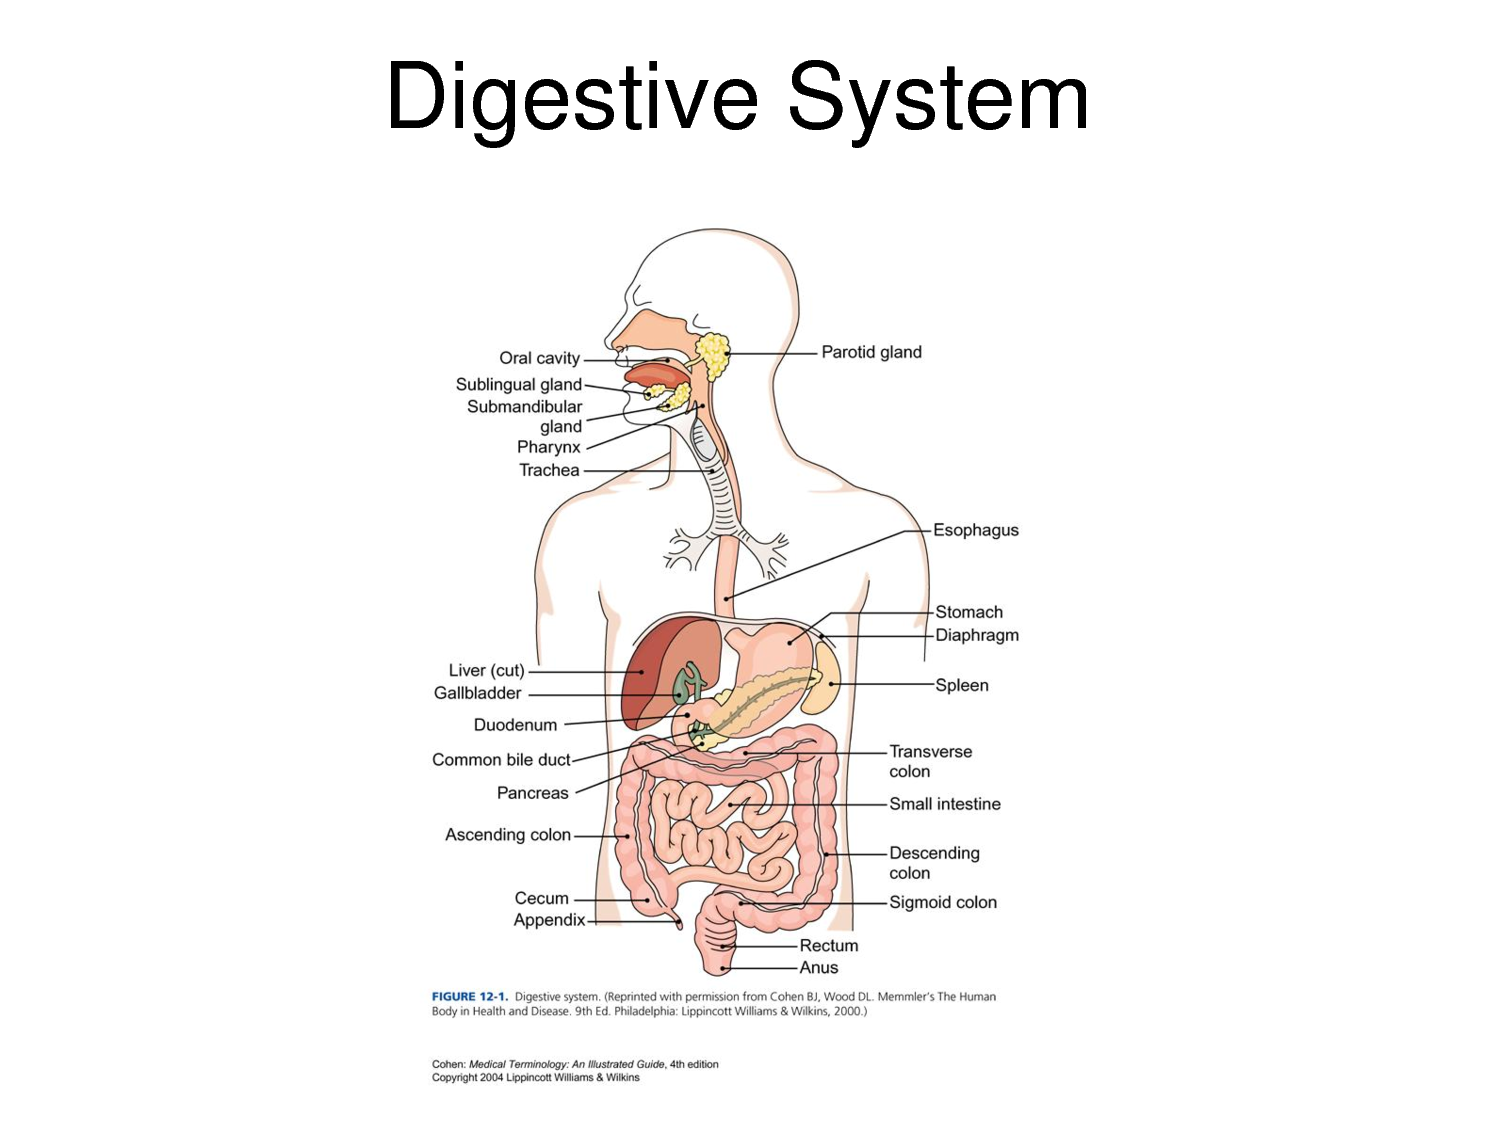 human digestive system labeled health medicine and anatomy reference pictures [ 1500 x 1125 Pixel ]